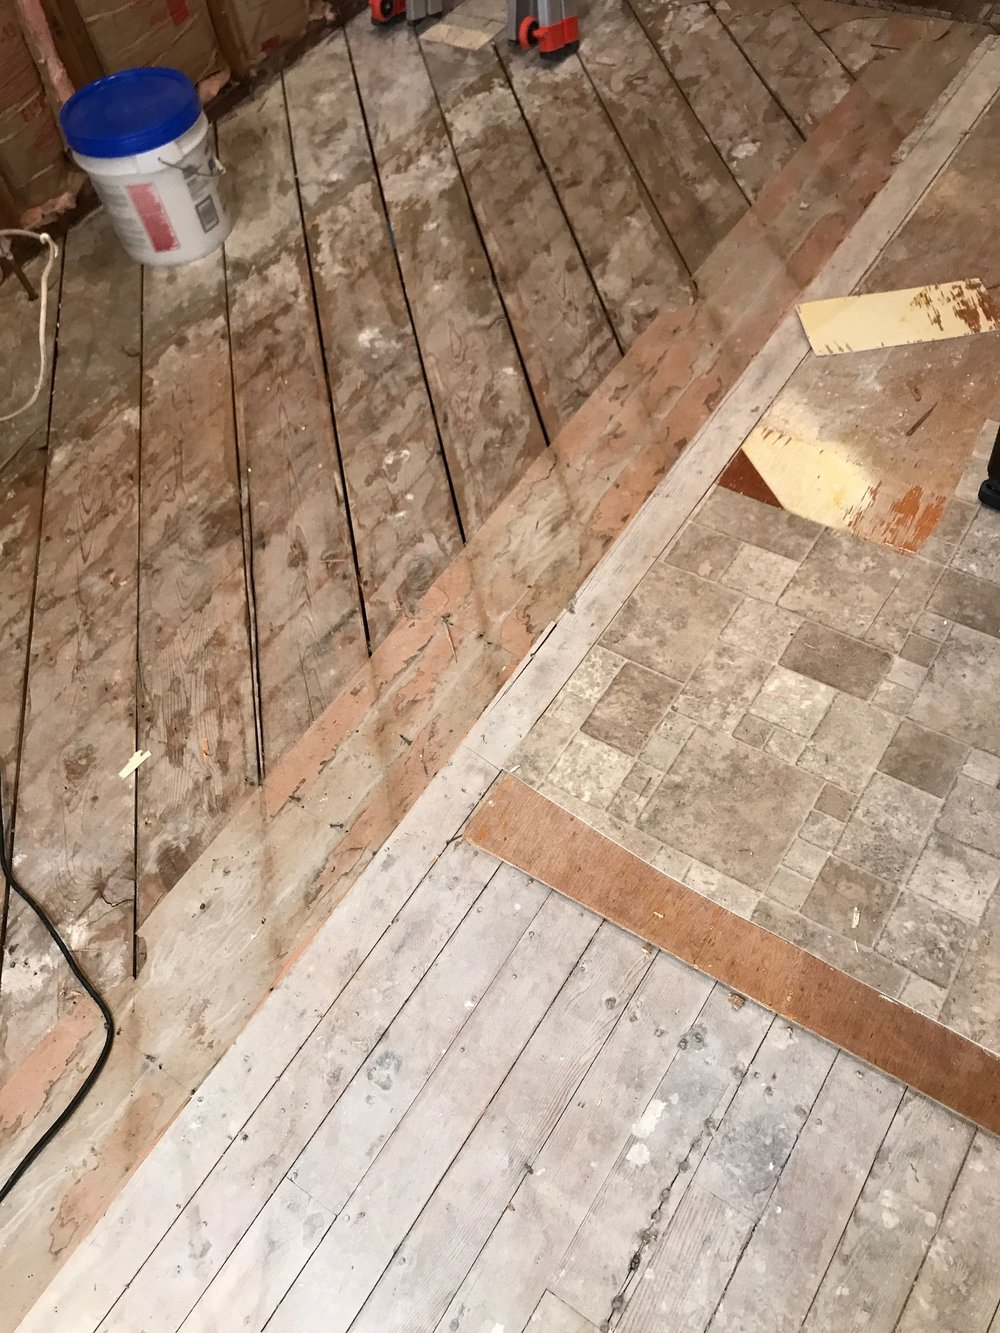 Ripping 3 layers of flooring out (This was a pain in my ass, but the new floors make it so worth it)